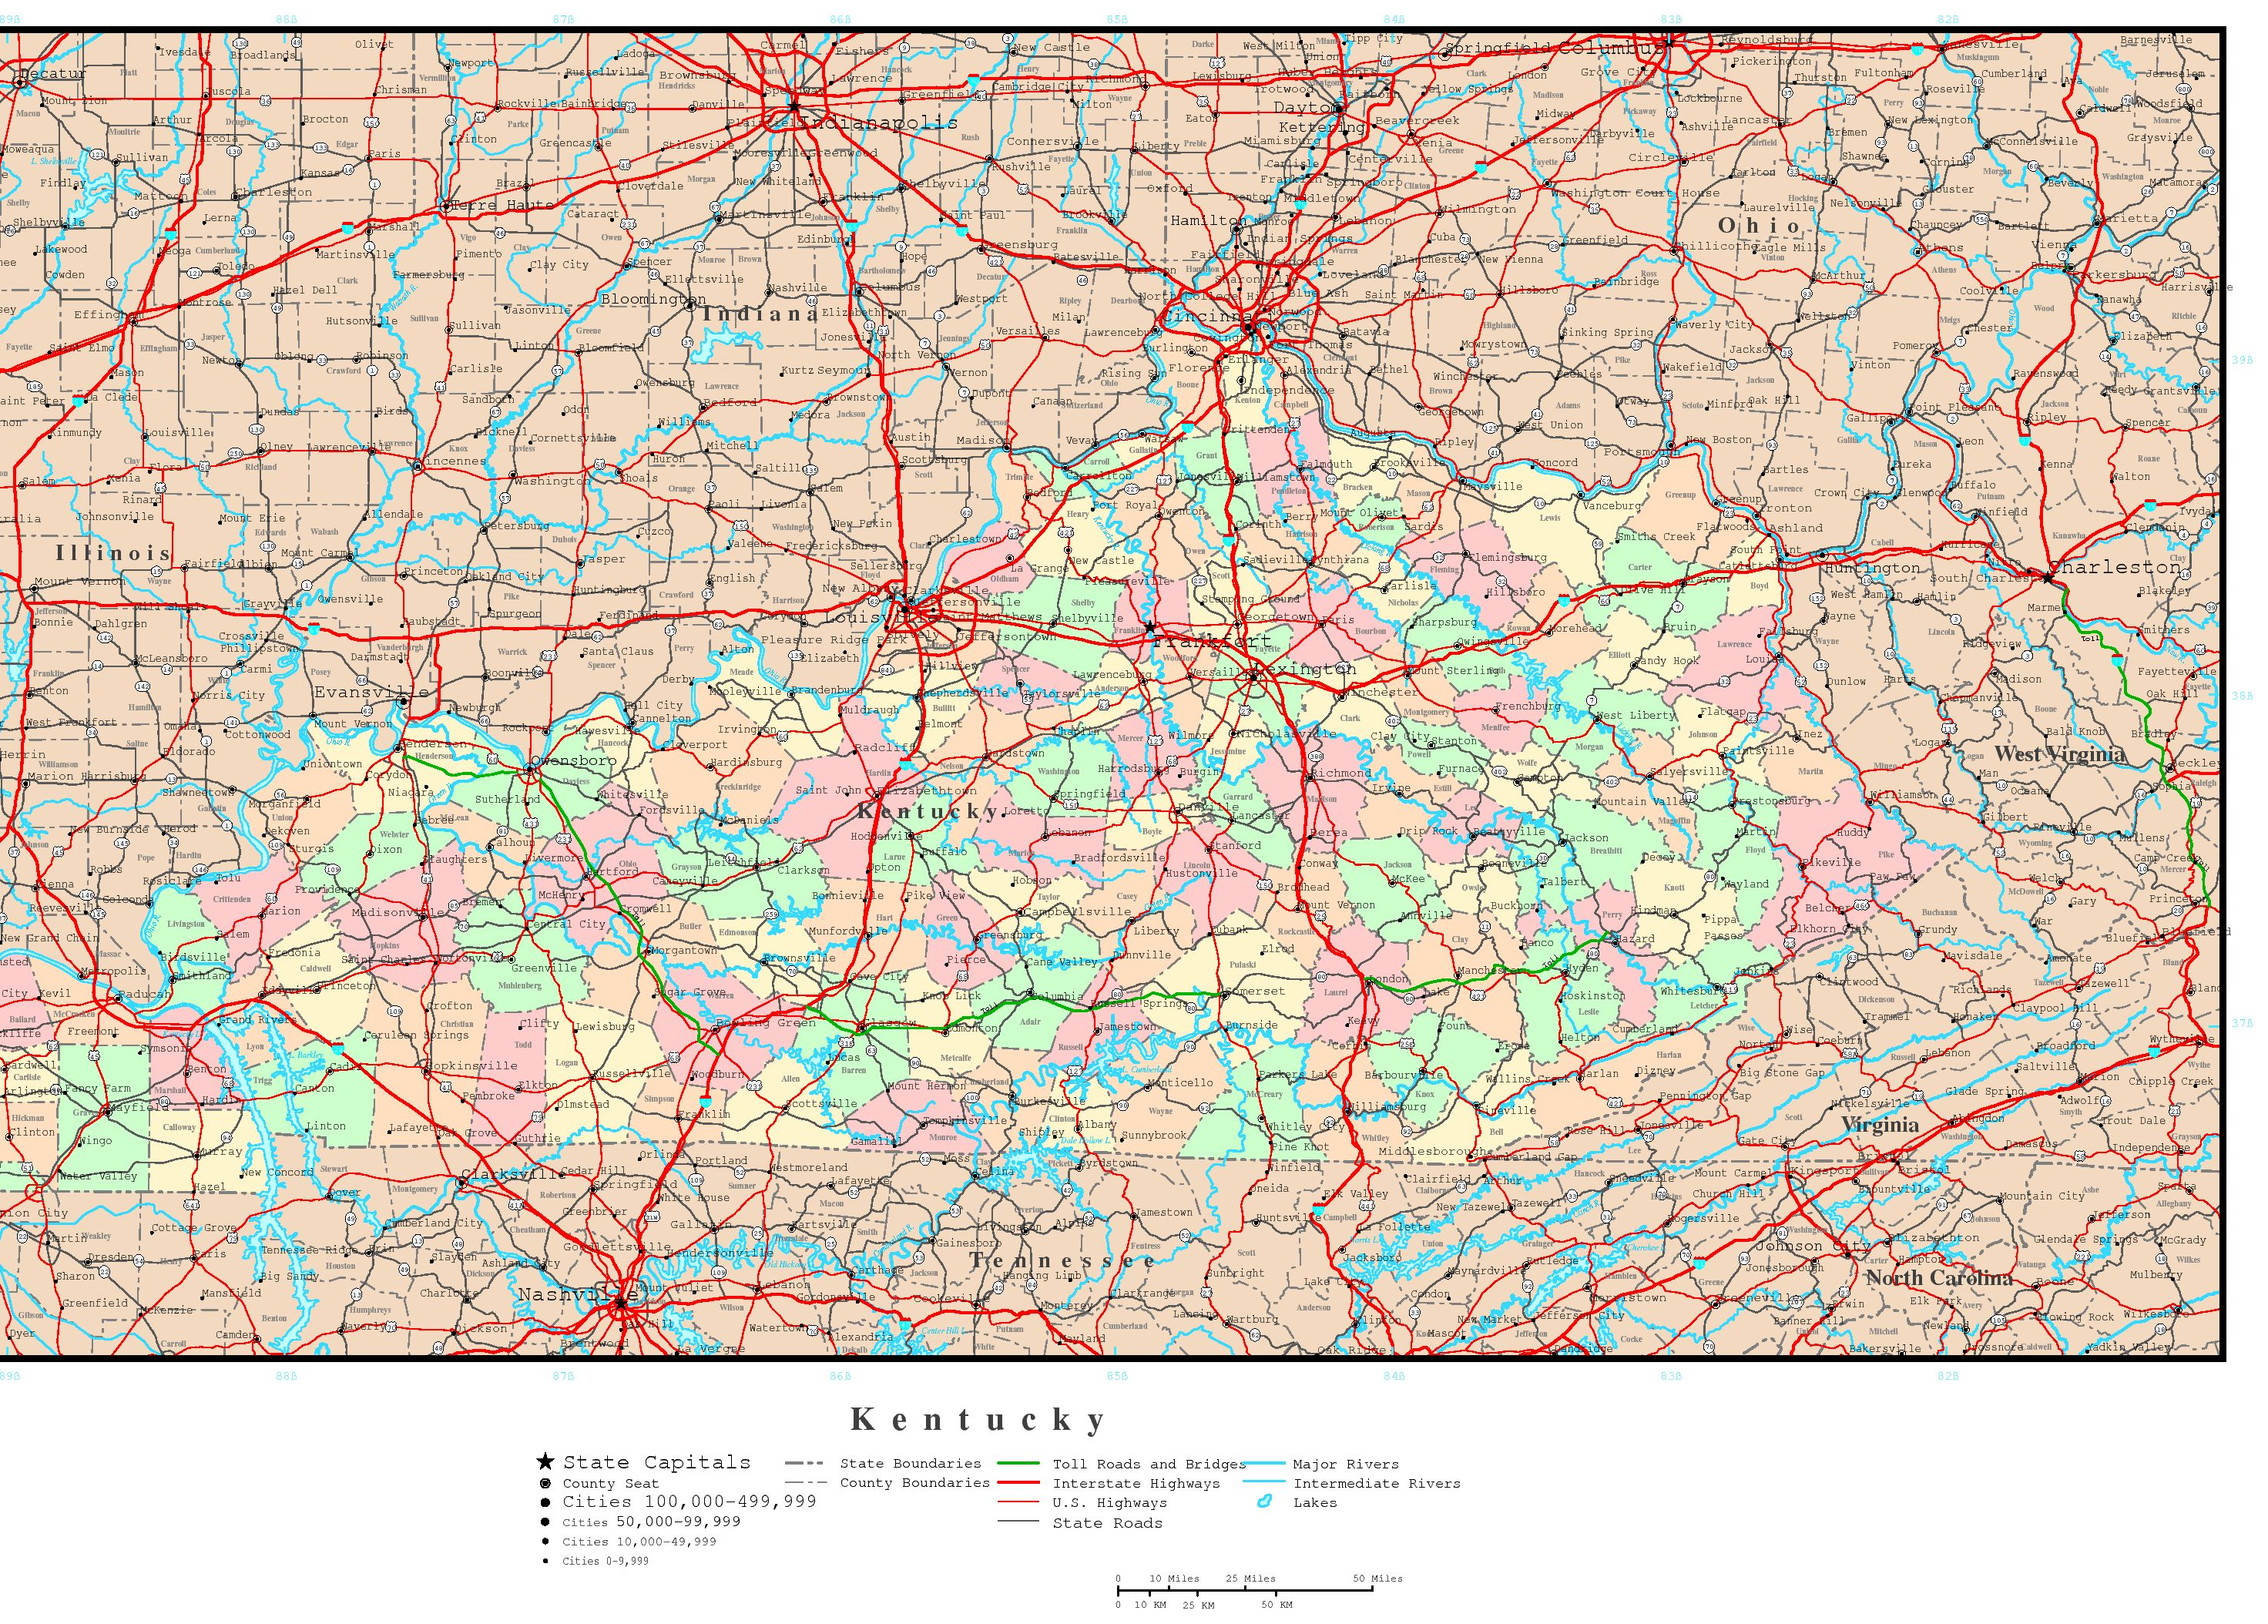 Kentucky Political Map - Cities map of kentucky